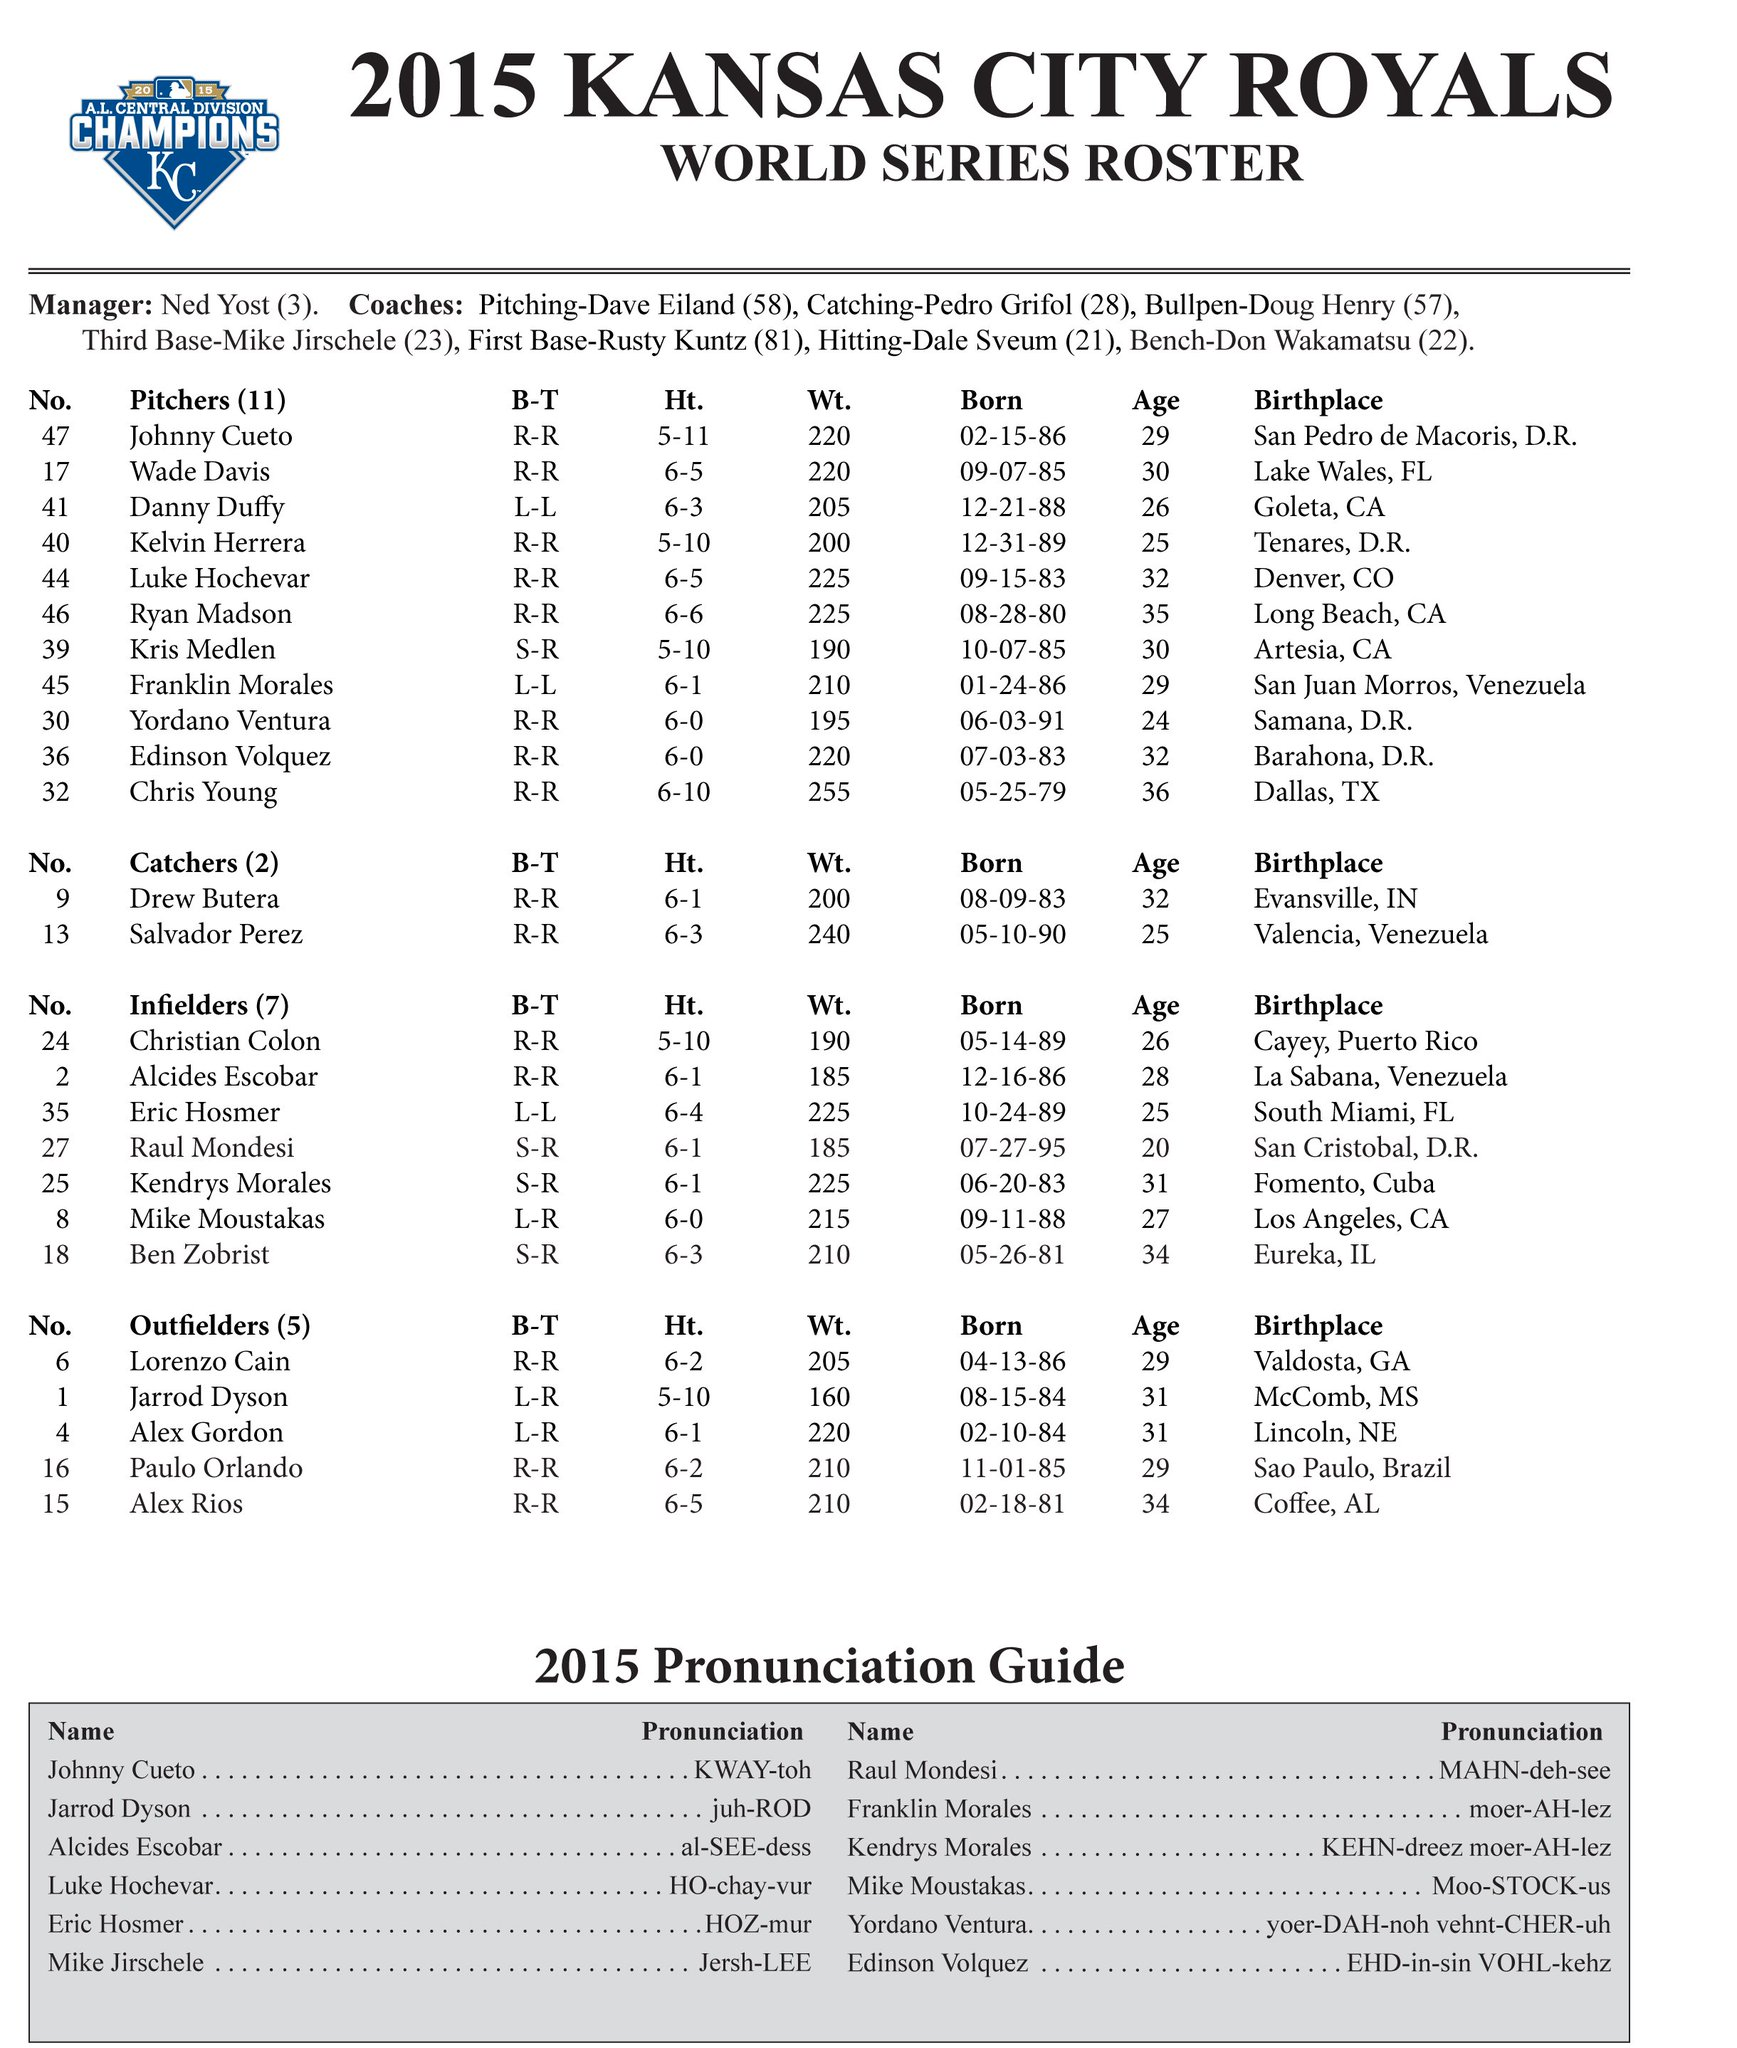 #Royals announce #WorldSeries roster. #TakeTheCrown https://t.co/yc0T9VyIMM